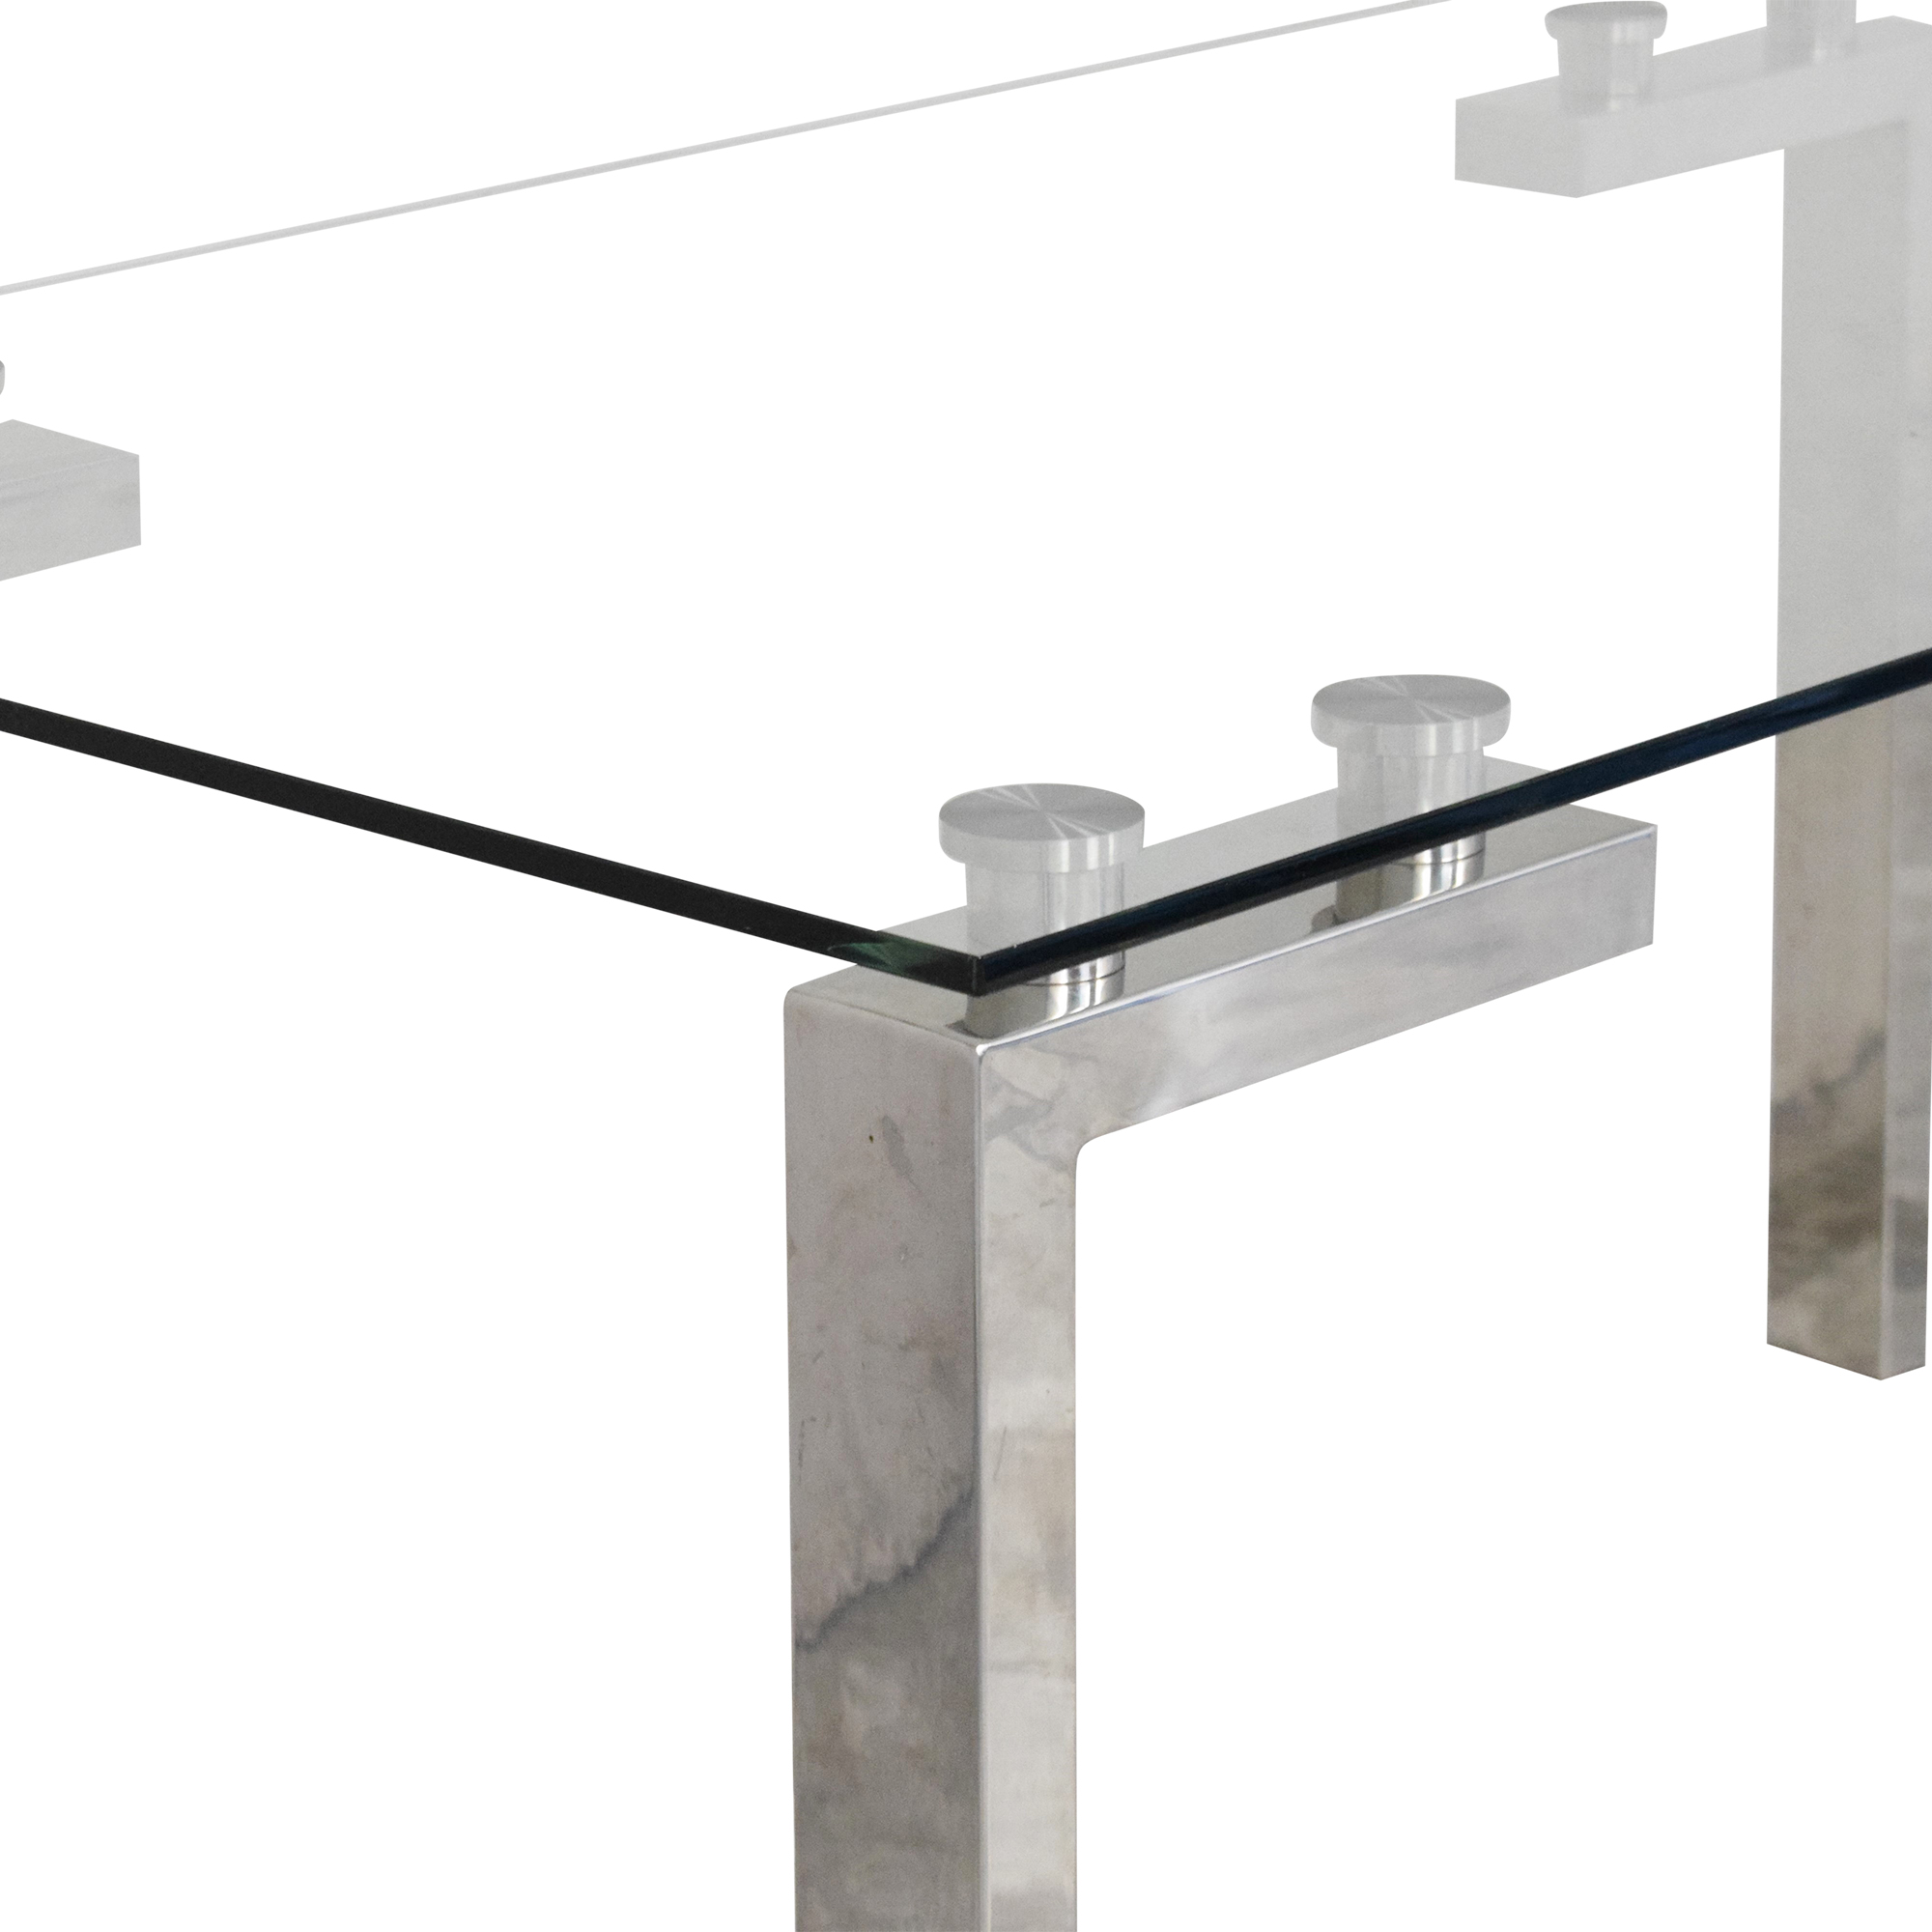 Transparent Rectangular Dining Table dimensions